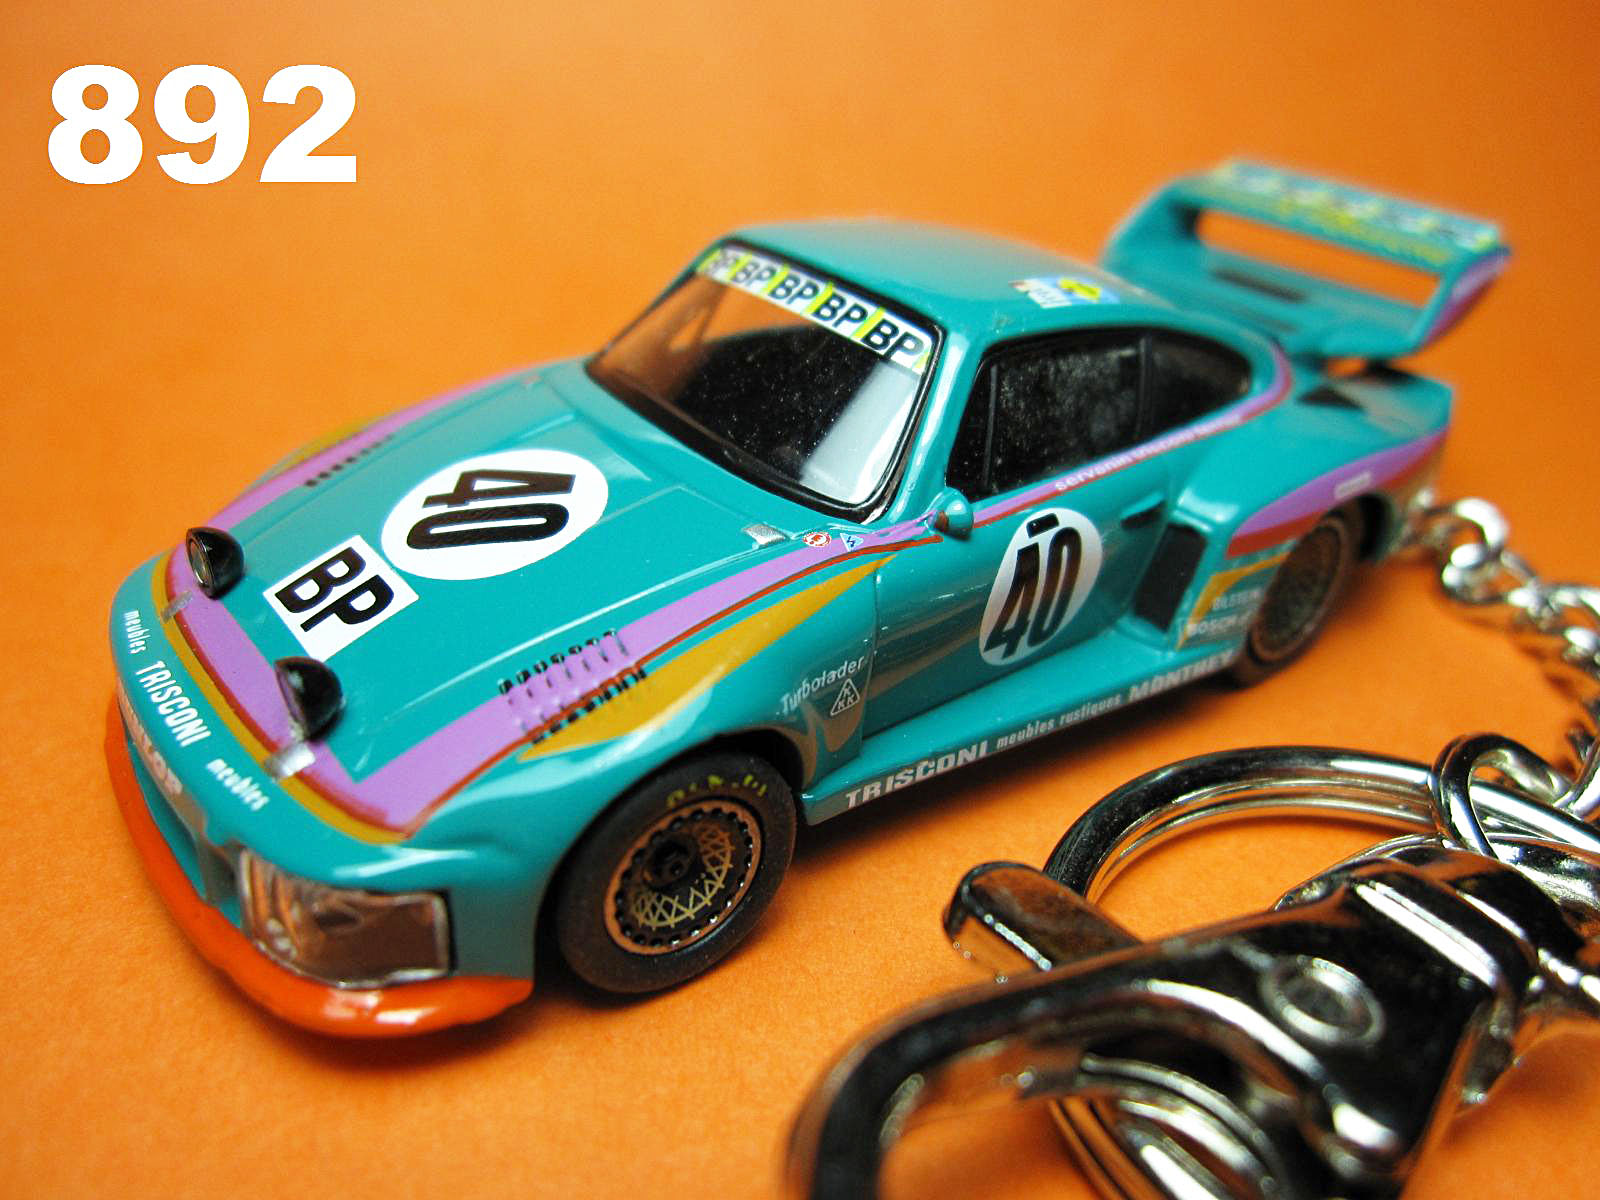 Porsche 935 Turbo LeMans 1979 #40 (Green) Die-cast Key Chain